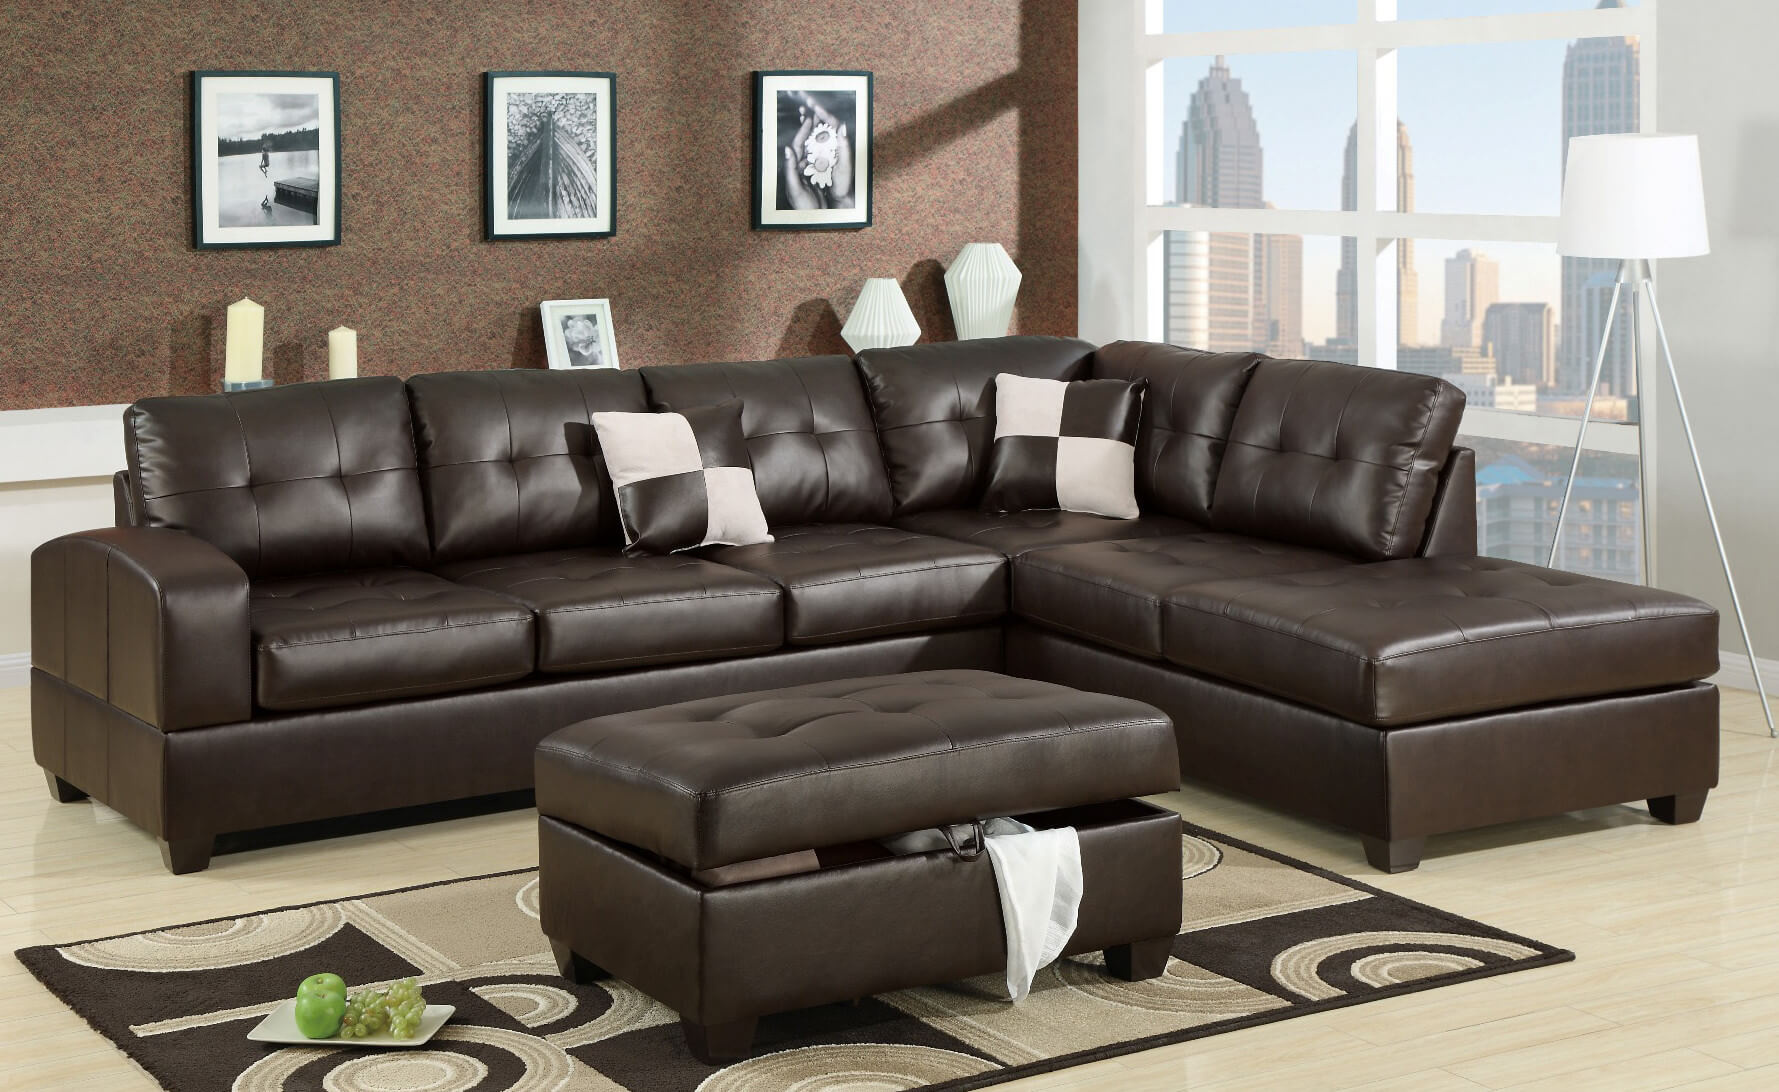 Best Affordable Sofa creative of affordable sleeper sofa charming living room design ideas with decor of best affordable sleeper This Elegantly Modern Piece Is Crafted With Bonded Leather